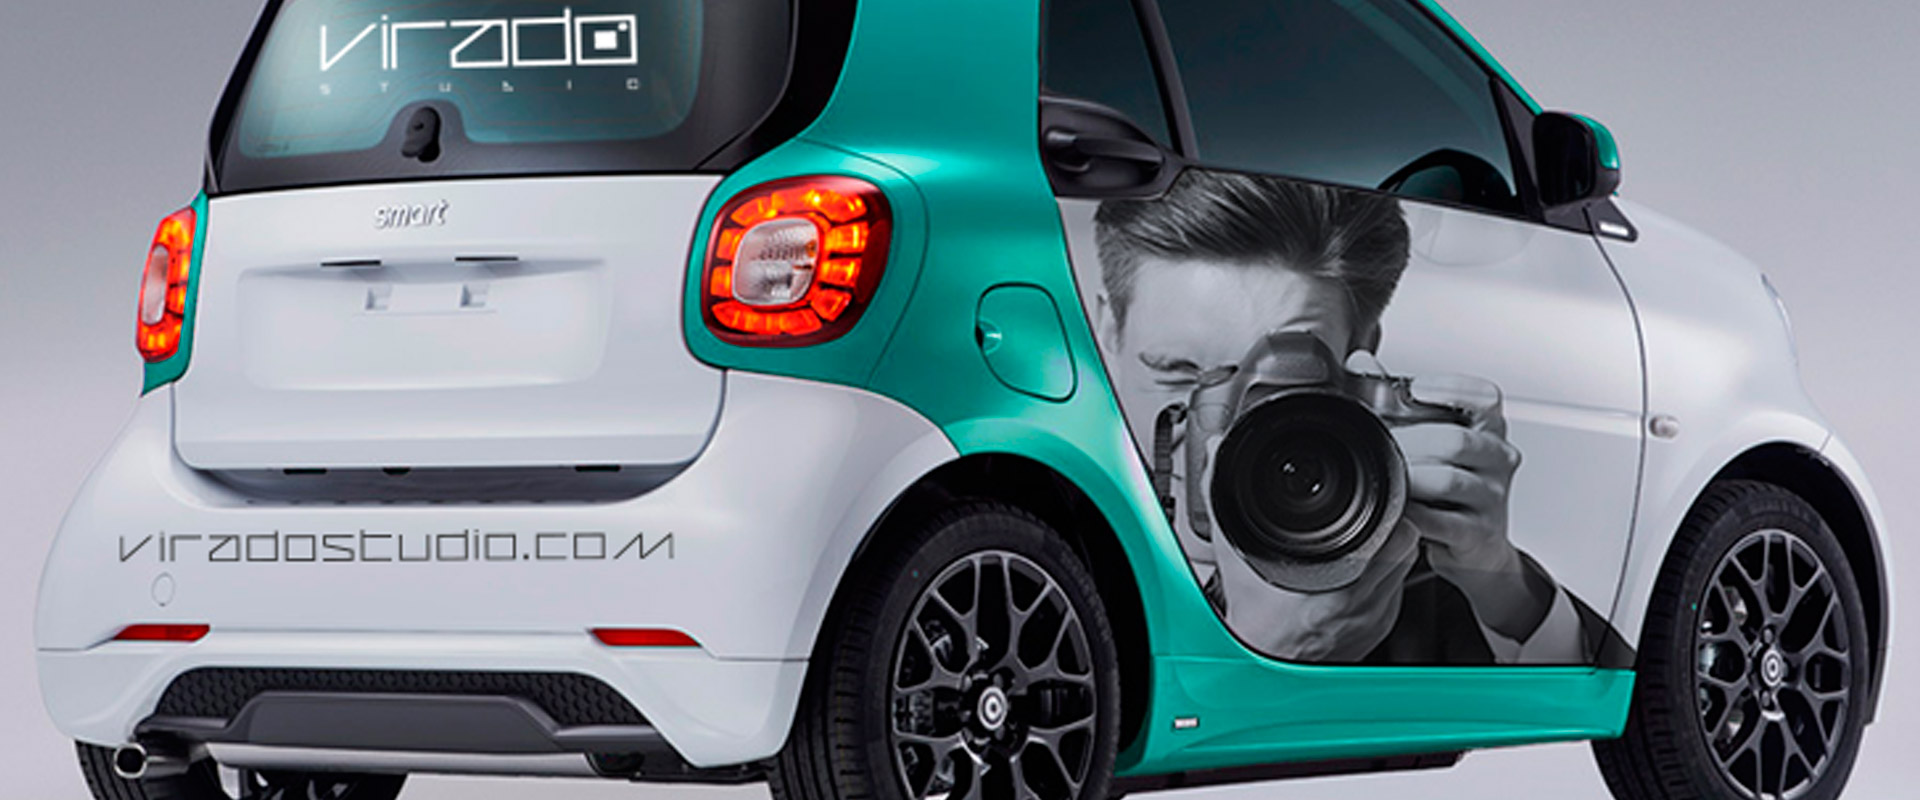 Rotulaci n de coche smart viradostudio prorotul for Rotulacion de vehiculos madrid